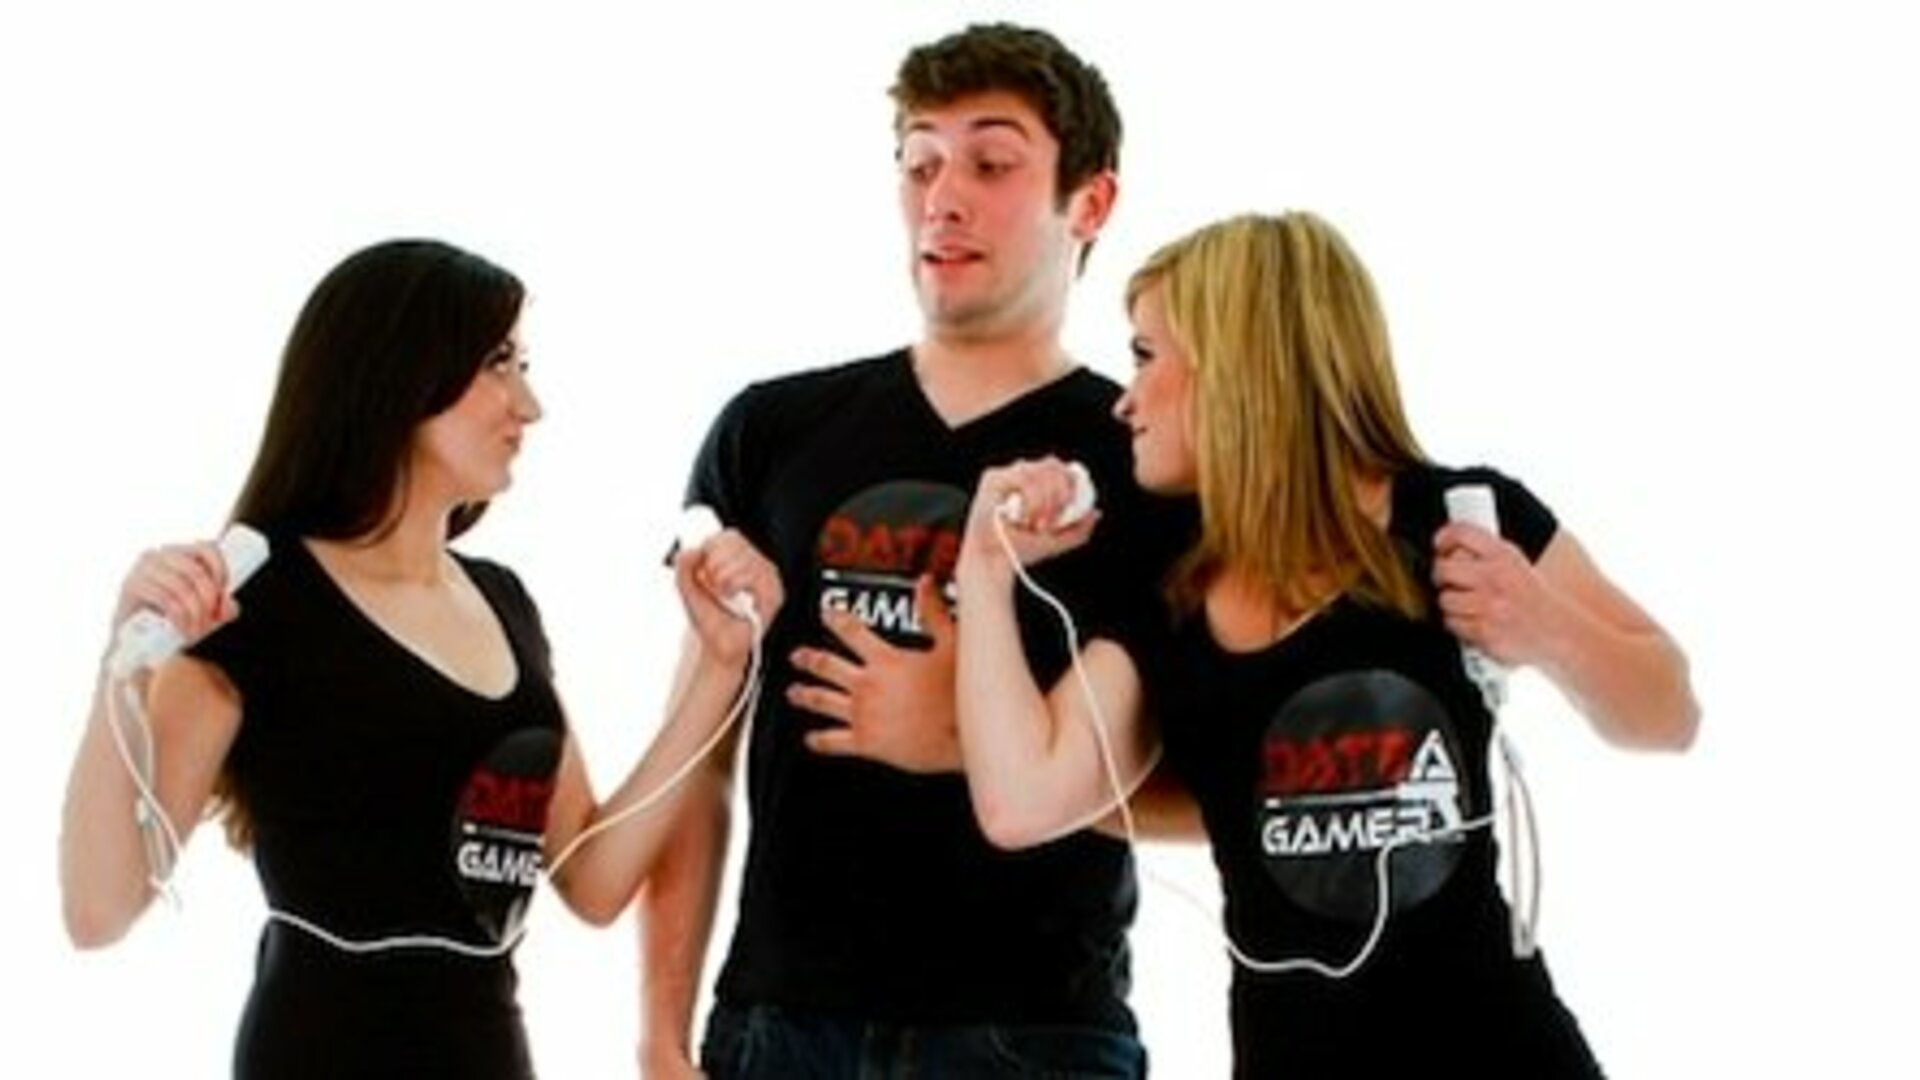 Online dating for gamers uk